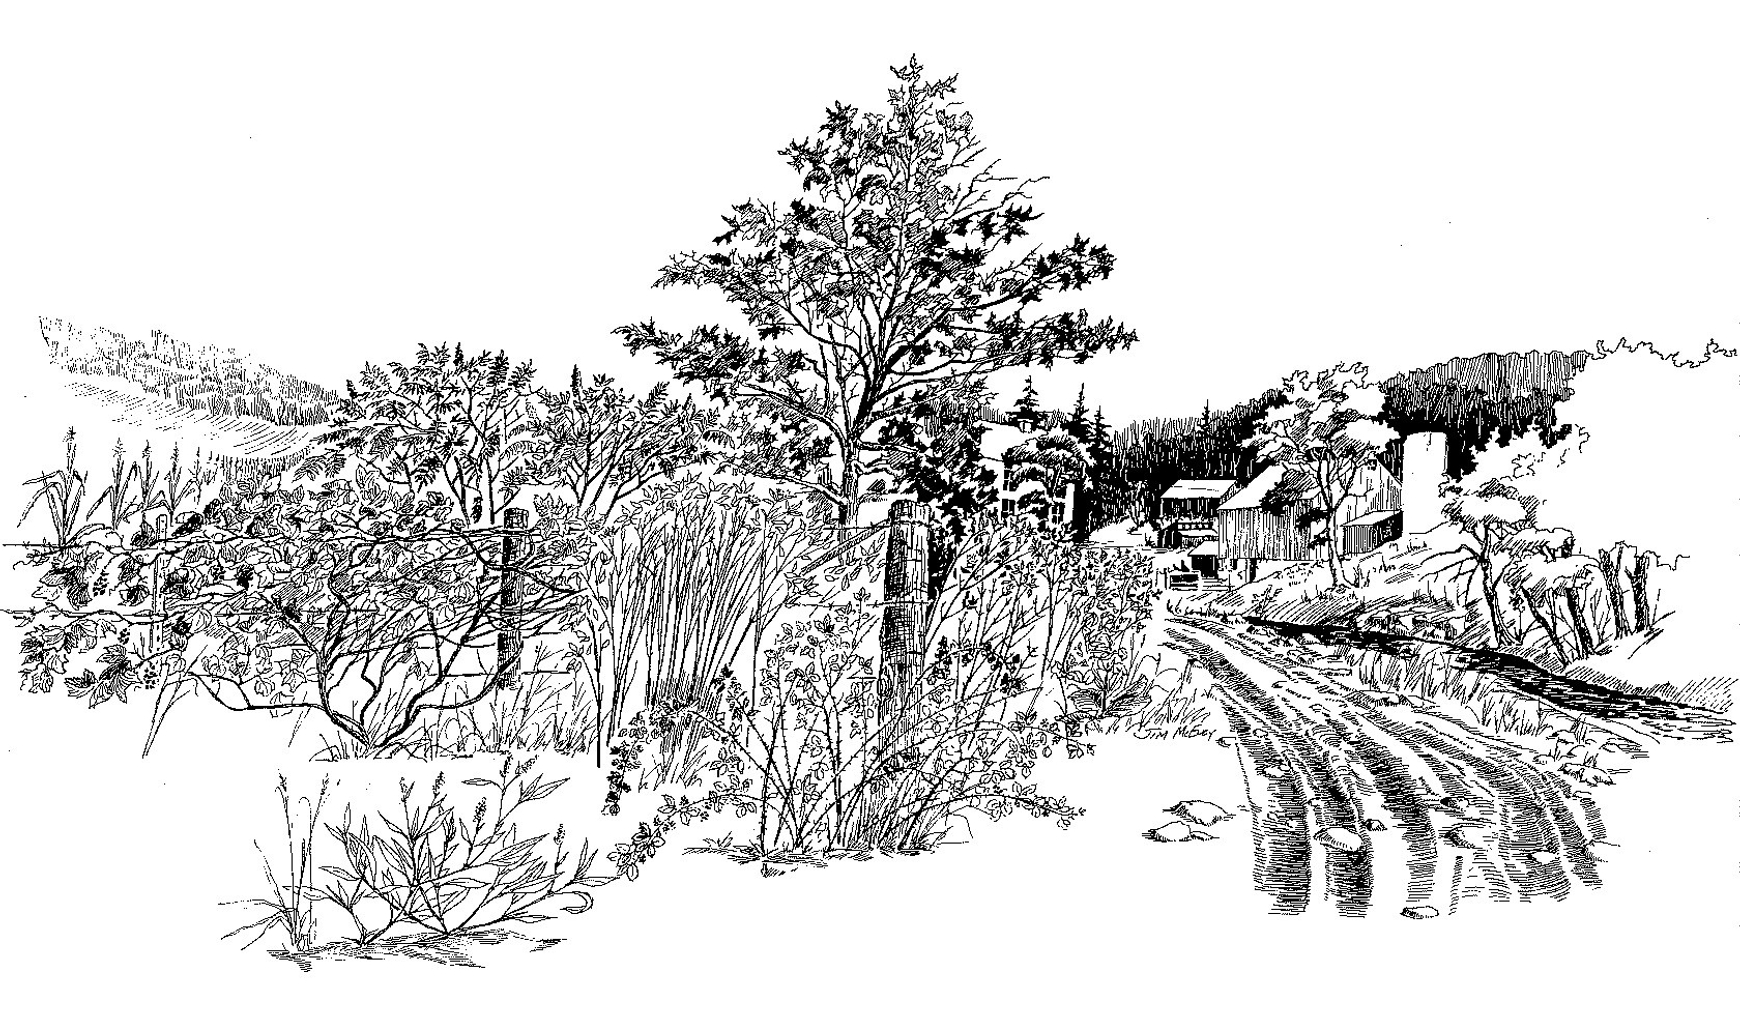 black and white drawing of a rural farm scene